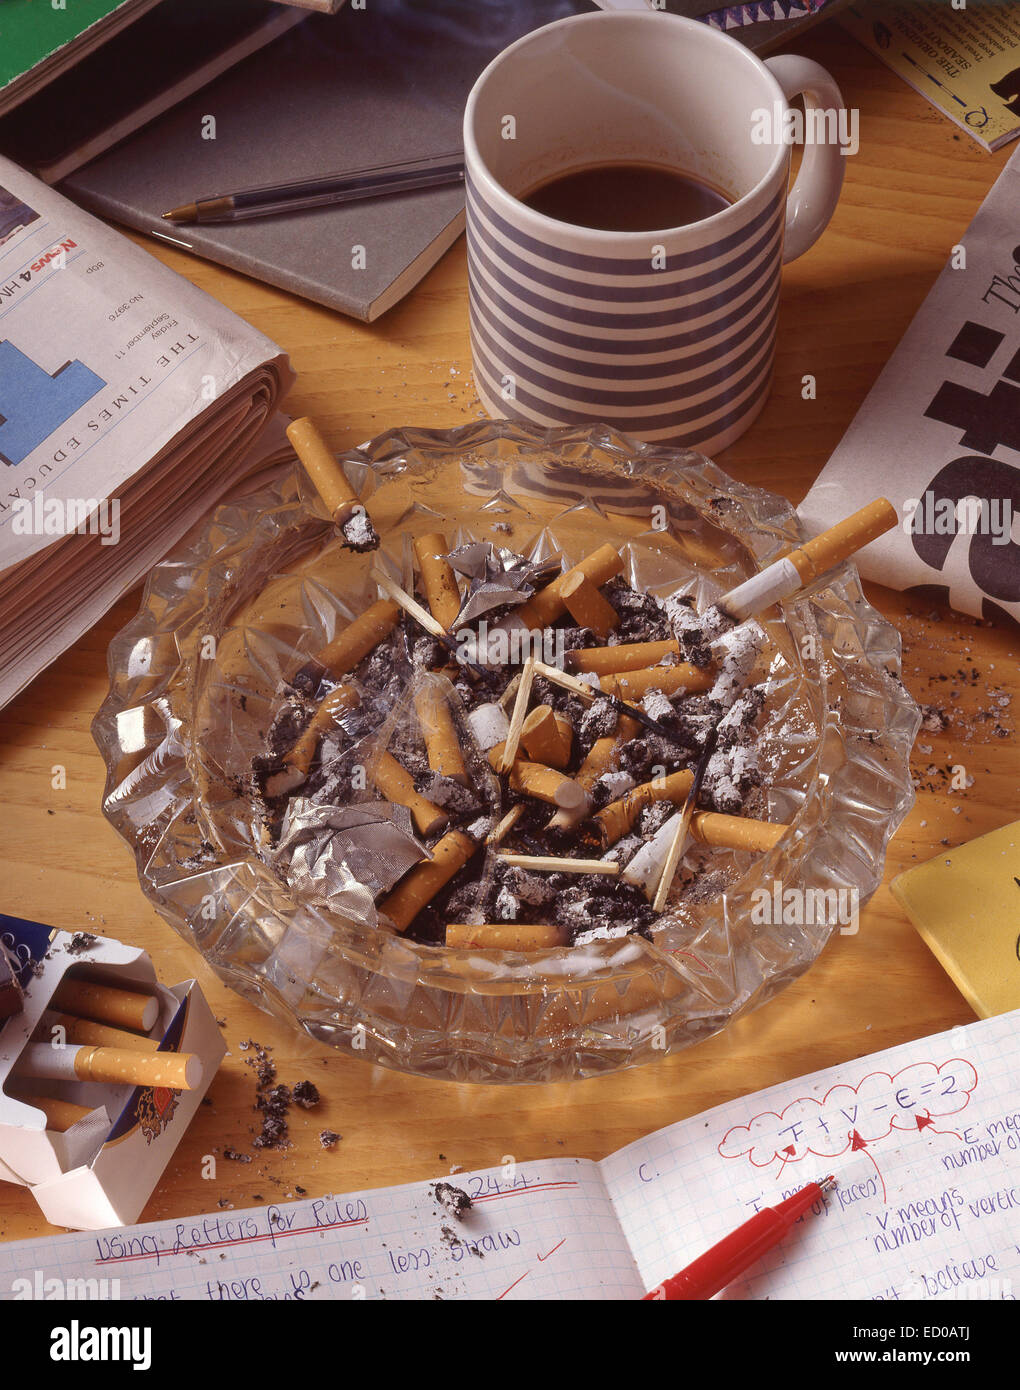 Work desk showing ashtray filled with cigarette butts - Stock Image